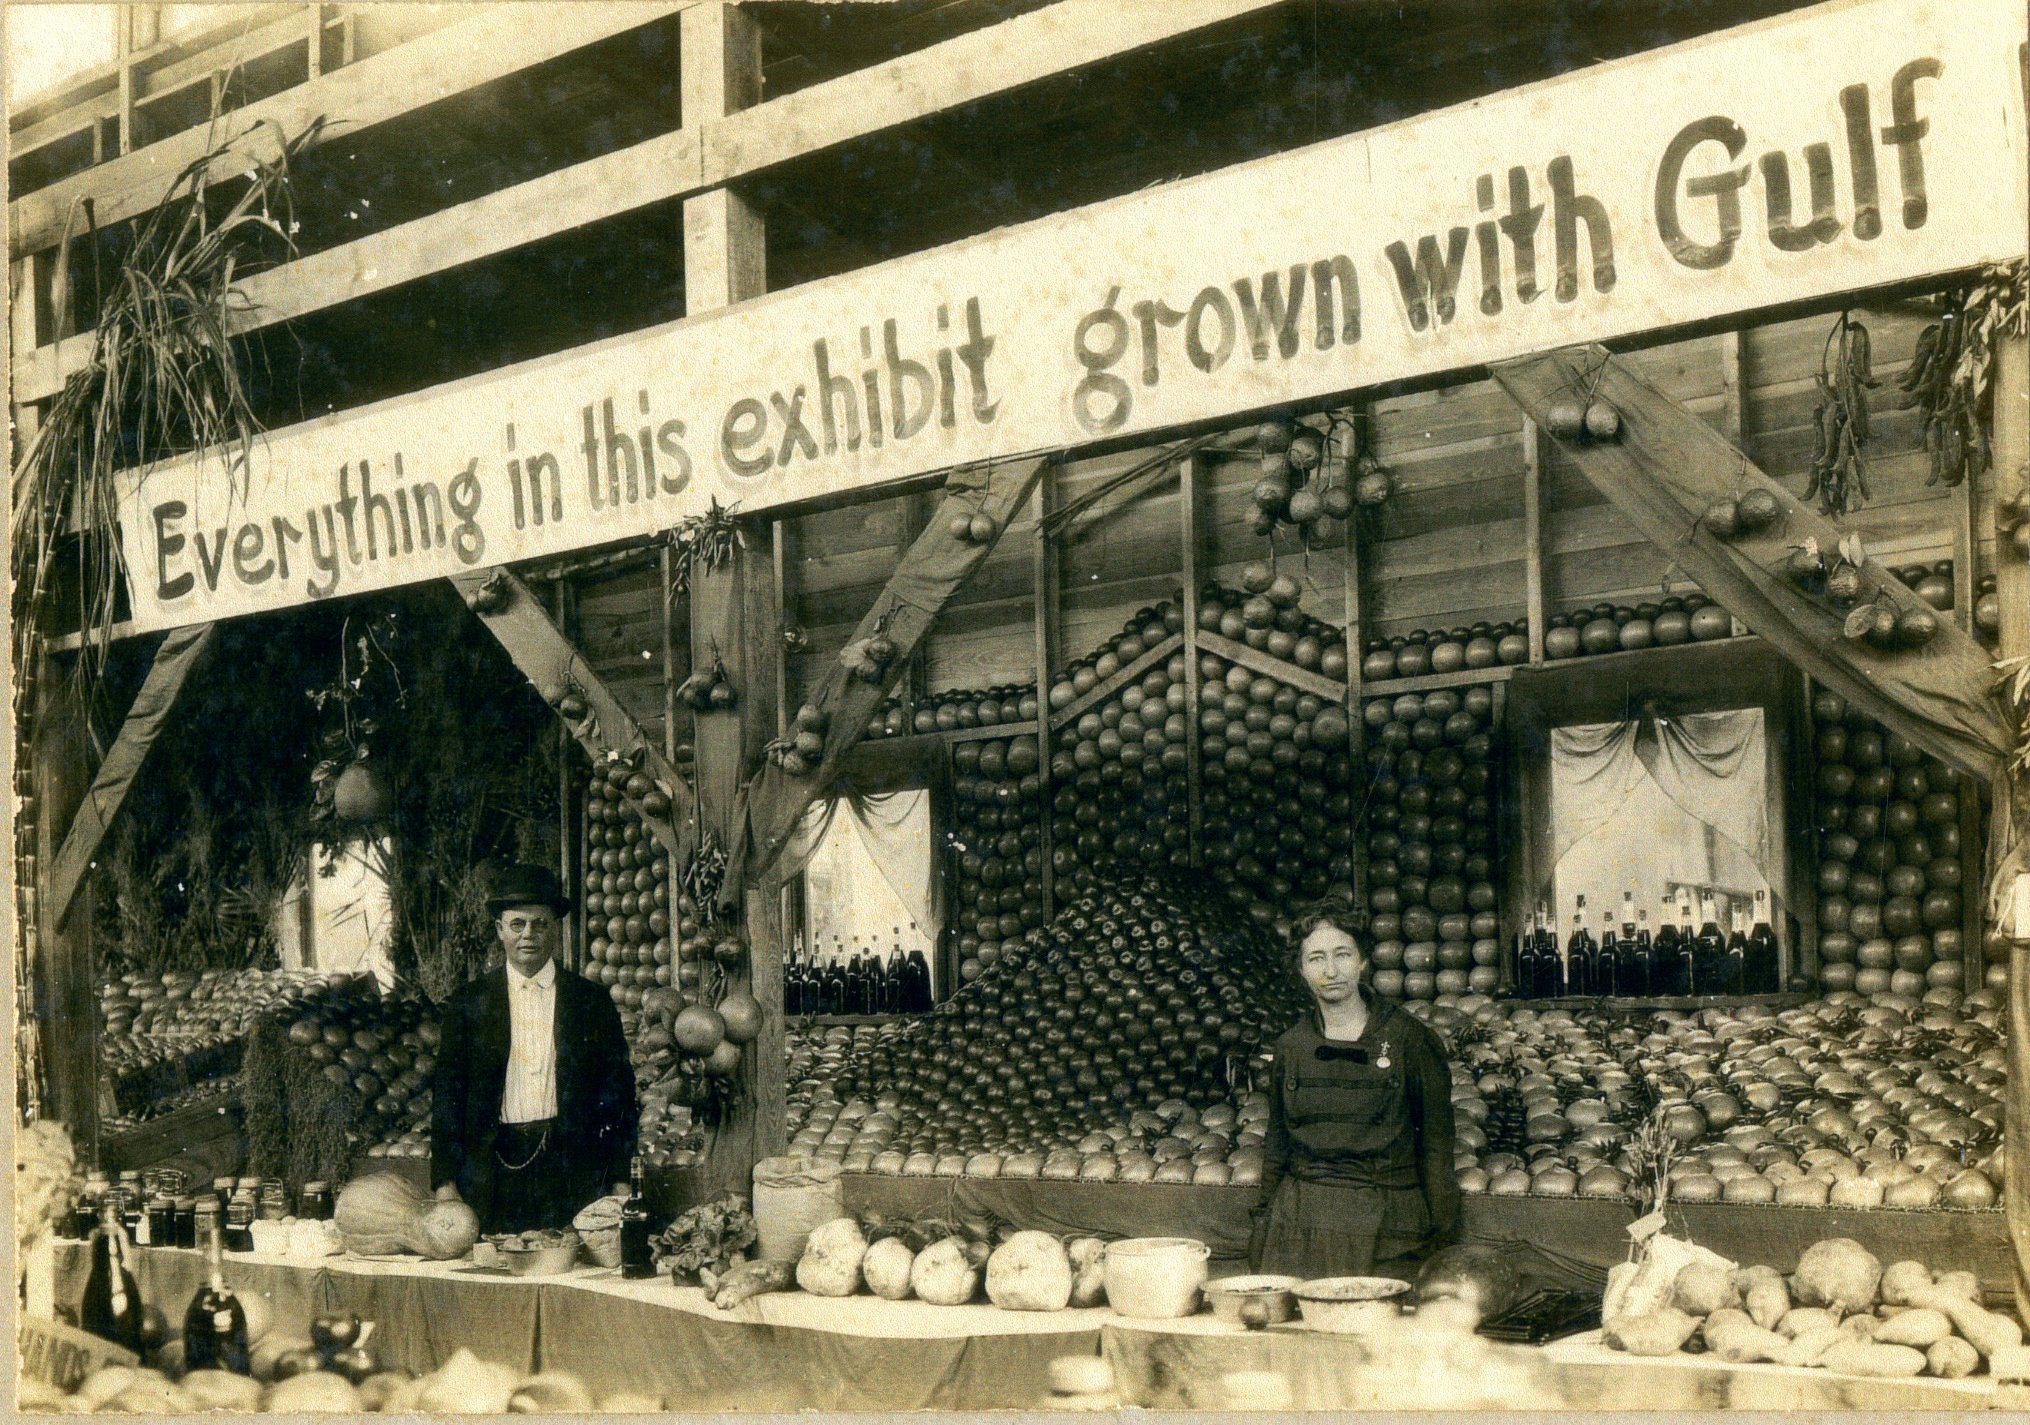 Ancil and Doris Walsingham at their exhibit at the Pinellas County Fair, Largo, Florida, circa 1900.